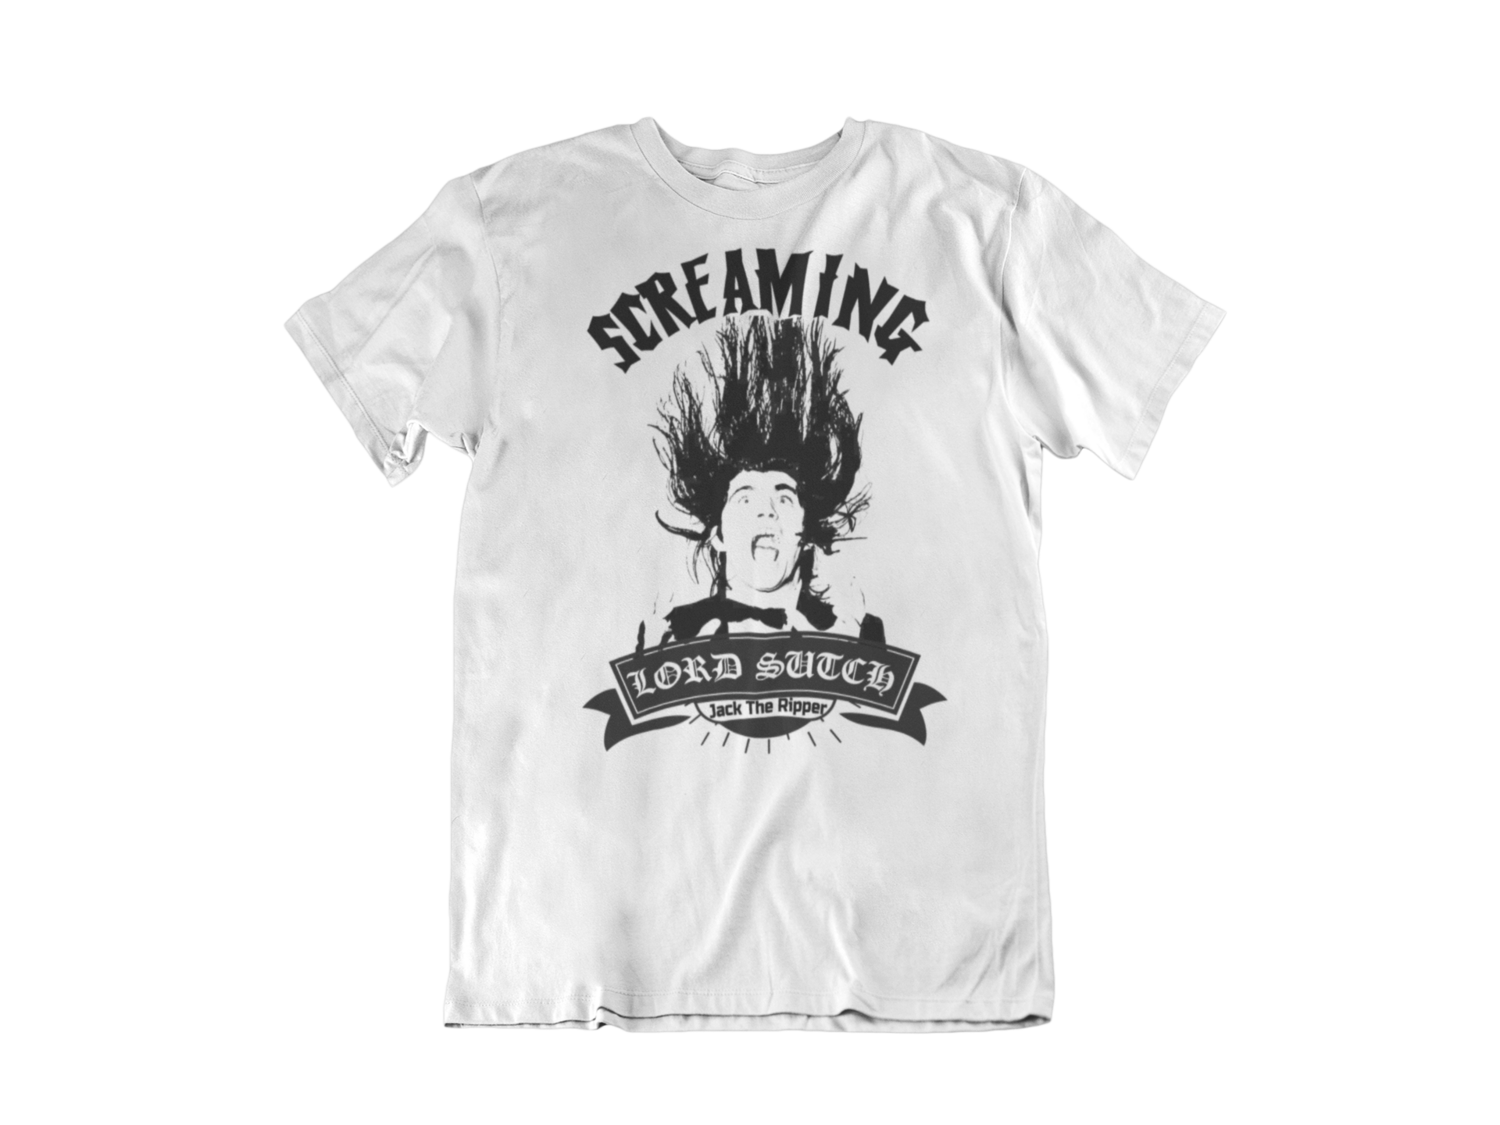 SCREAMING LORD SUTCH T-SHIRT FOR MEN